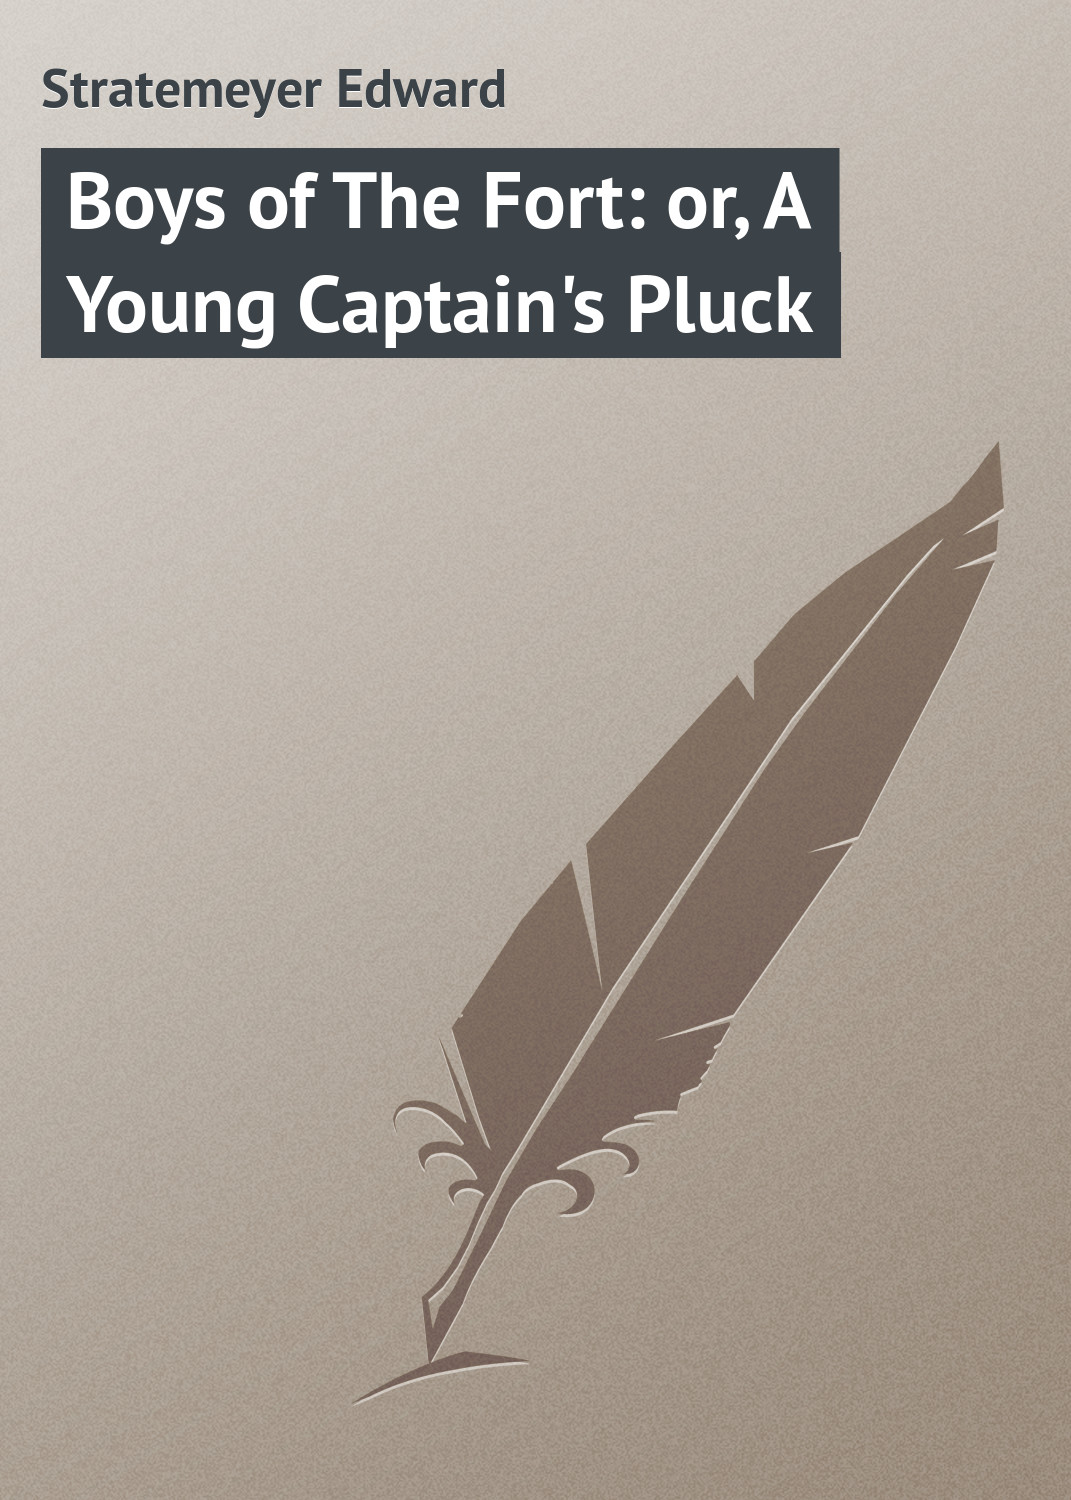 лучшая цена Stratemeyer Edward Boys of The Fort: or, A Young Captain's Pluck